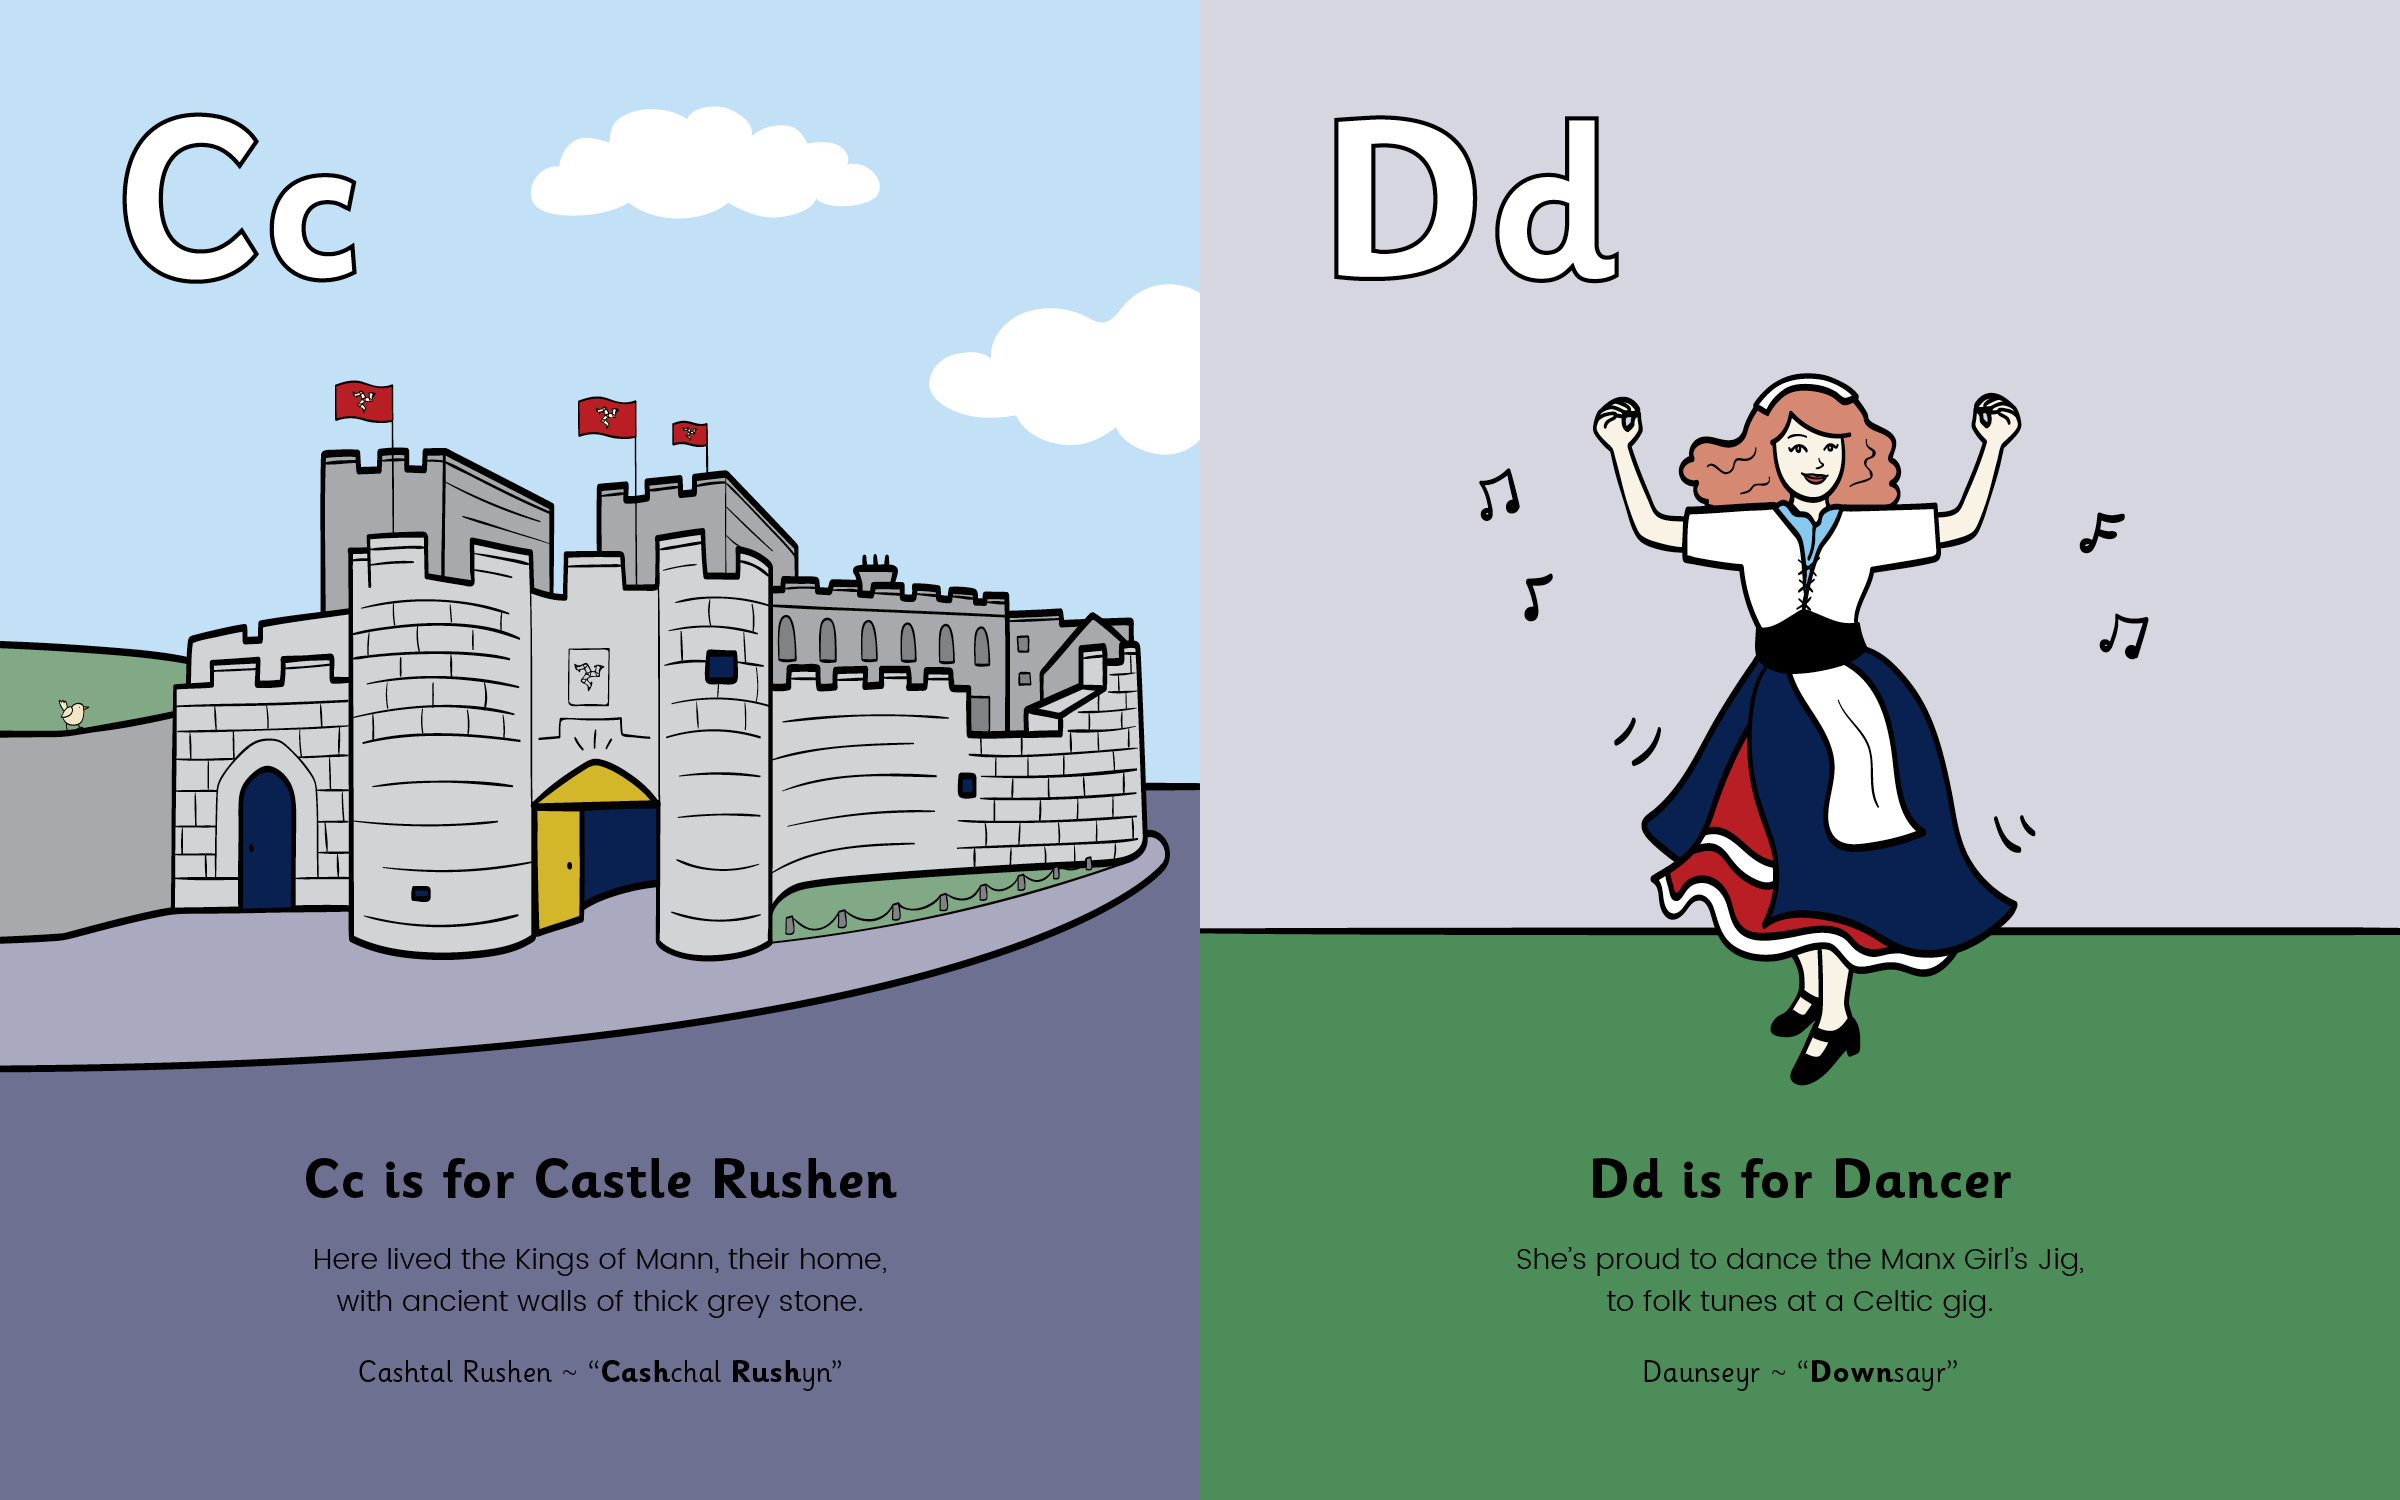 Cc is for Castle Rushen, Dd is for Dancer